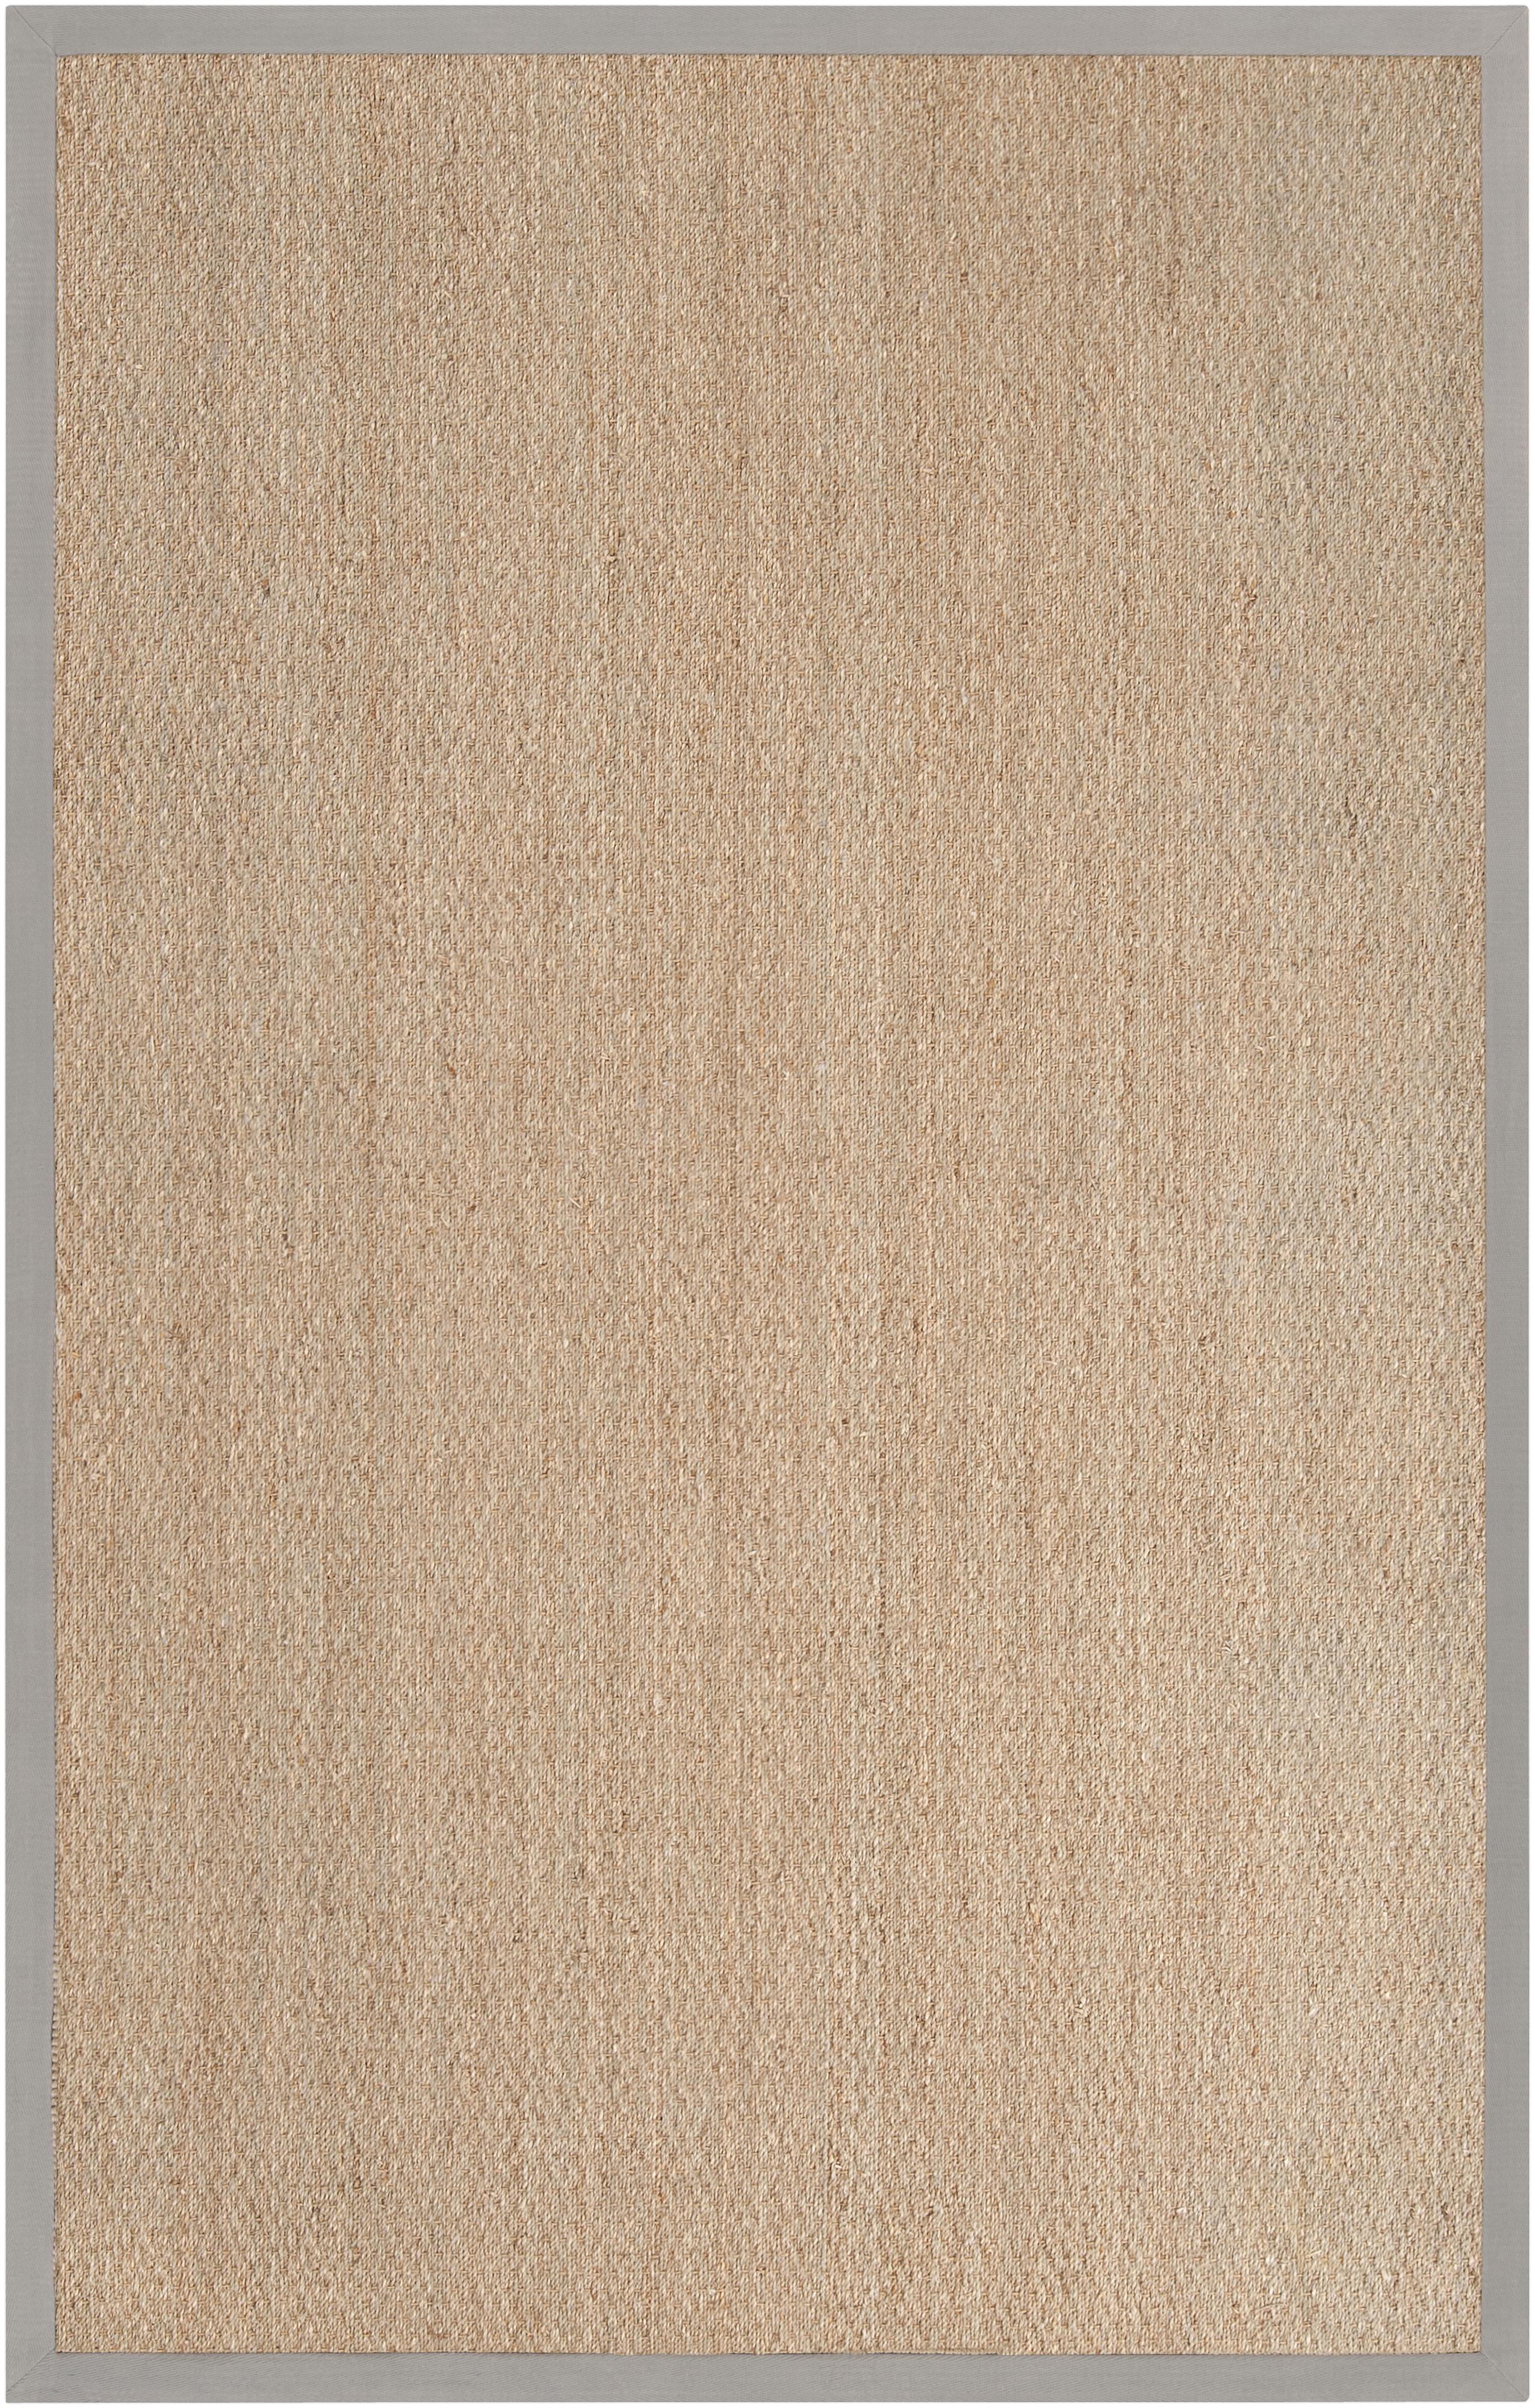 Surya Rugs Village 5' x 8' - Item Number: VIL6011-58